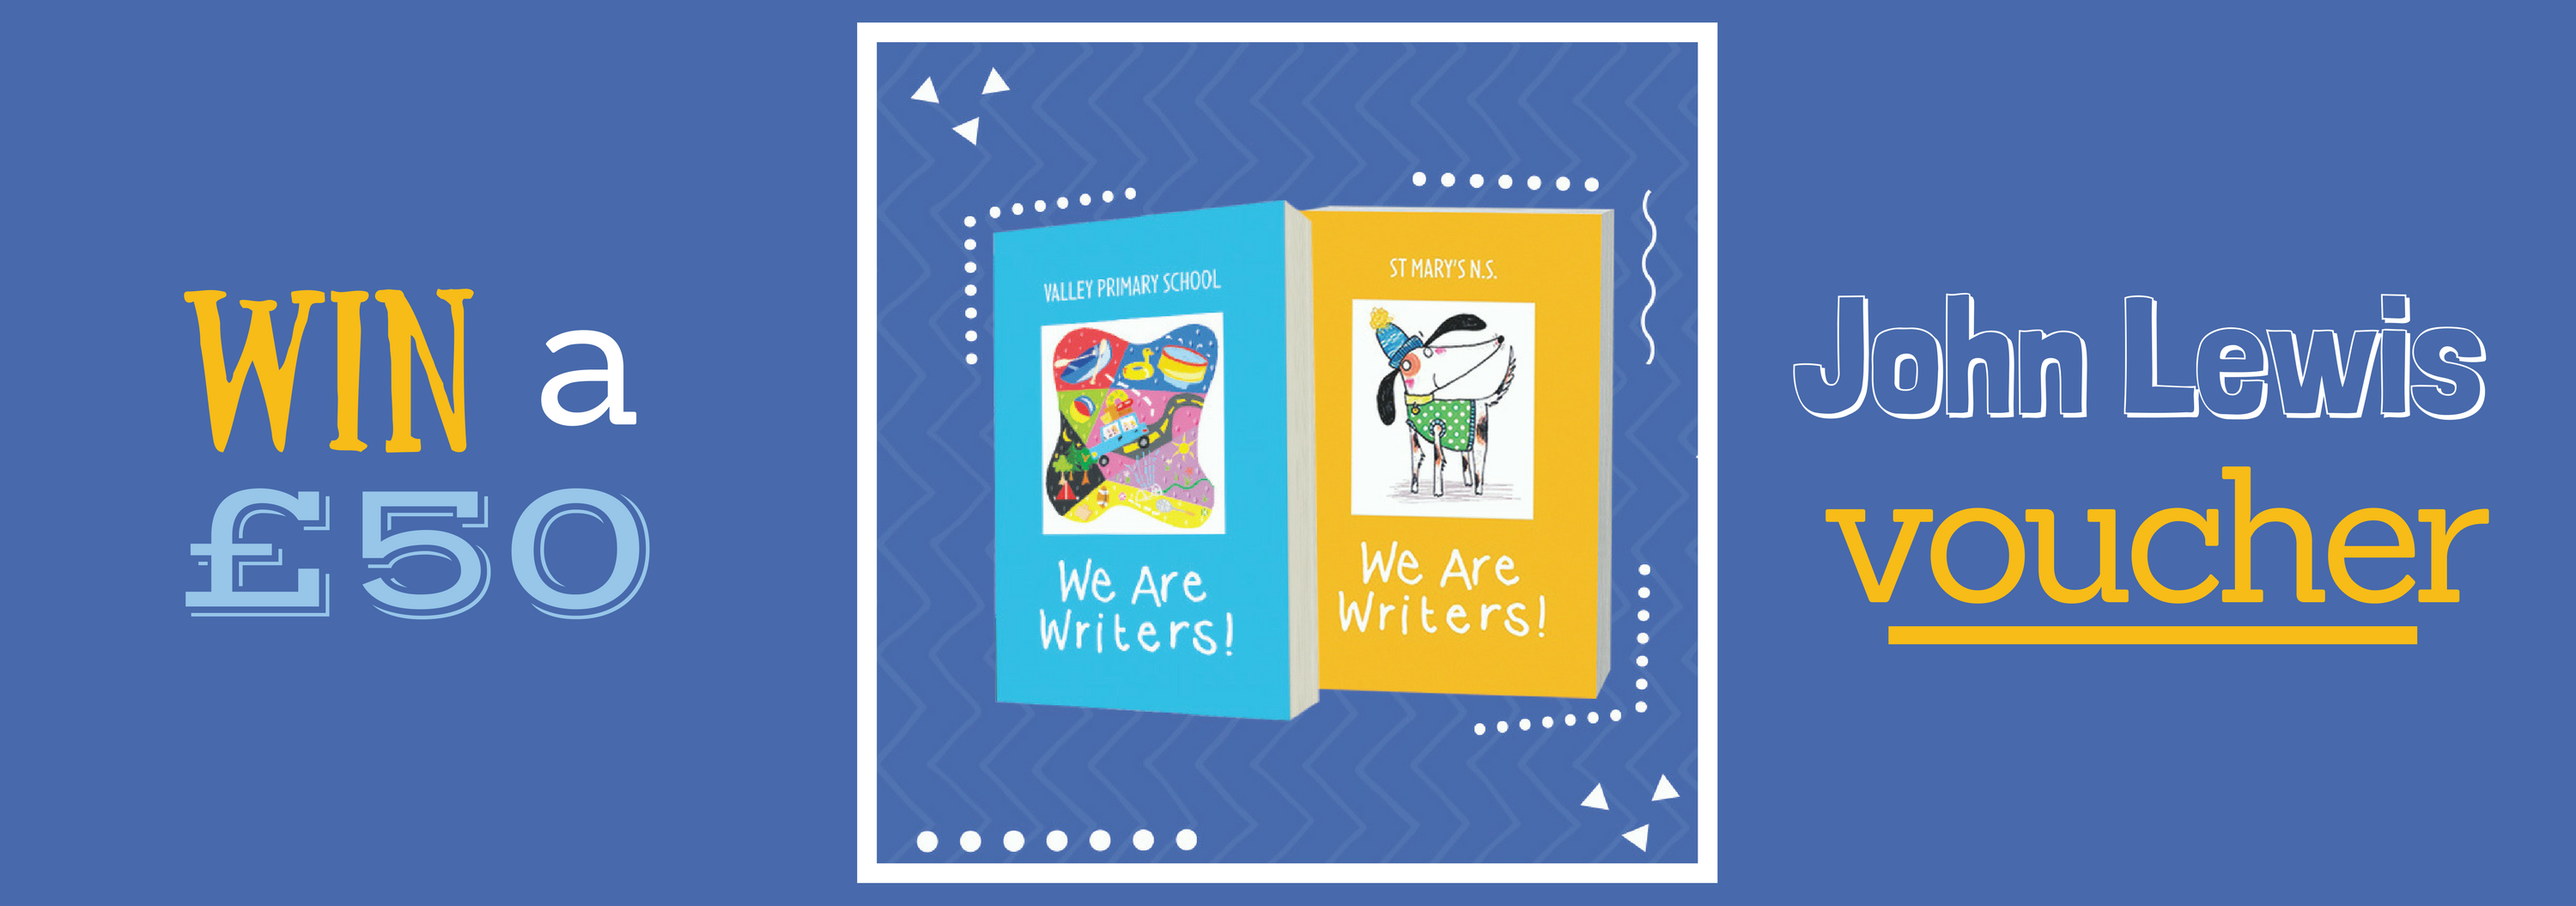 we are writers voucher (1).png